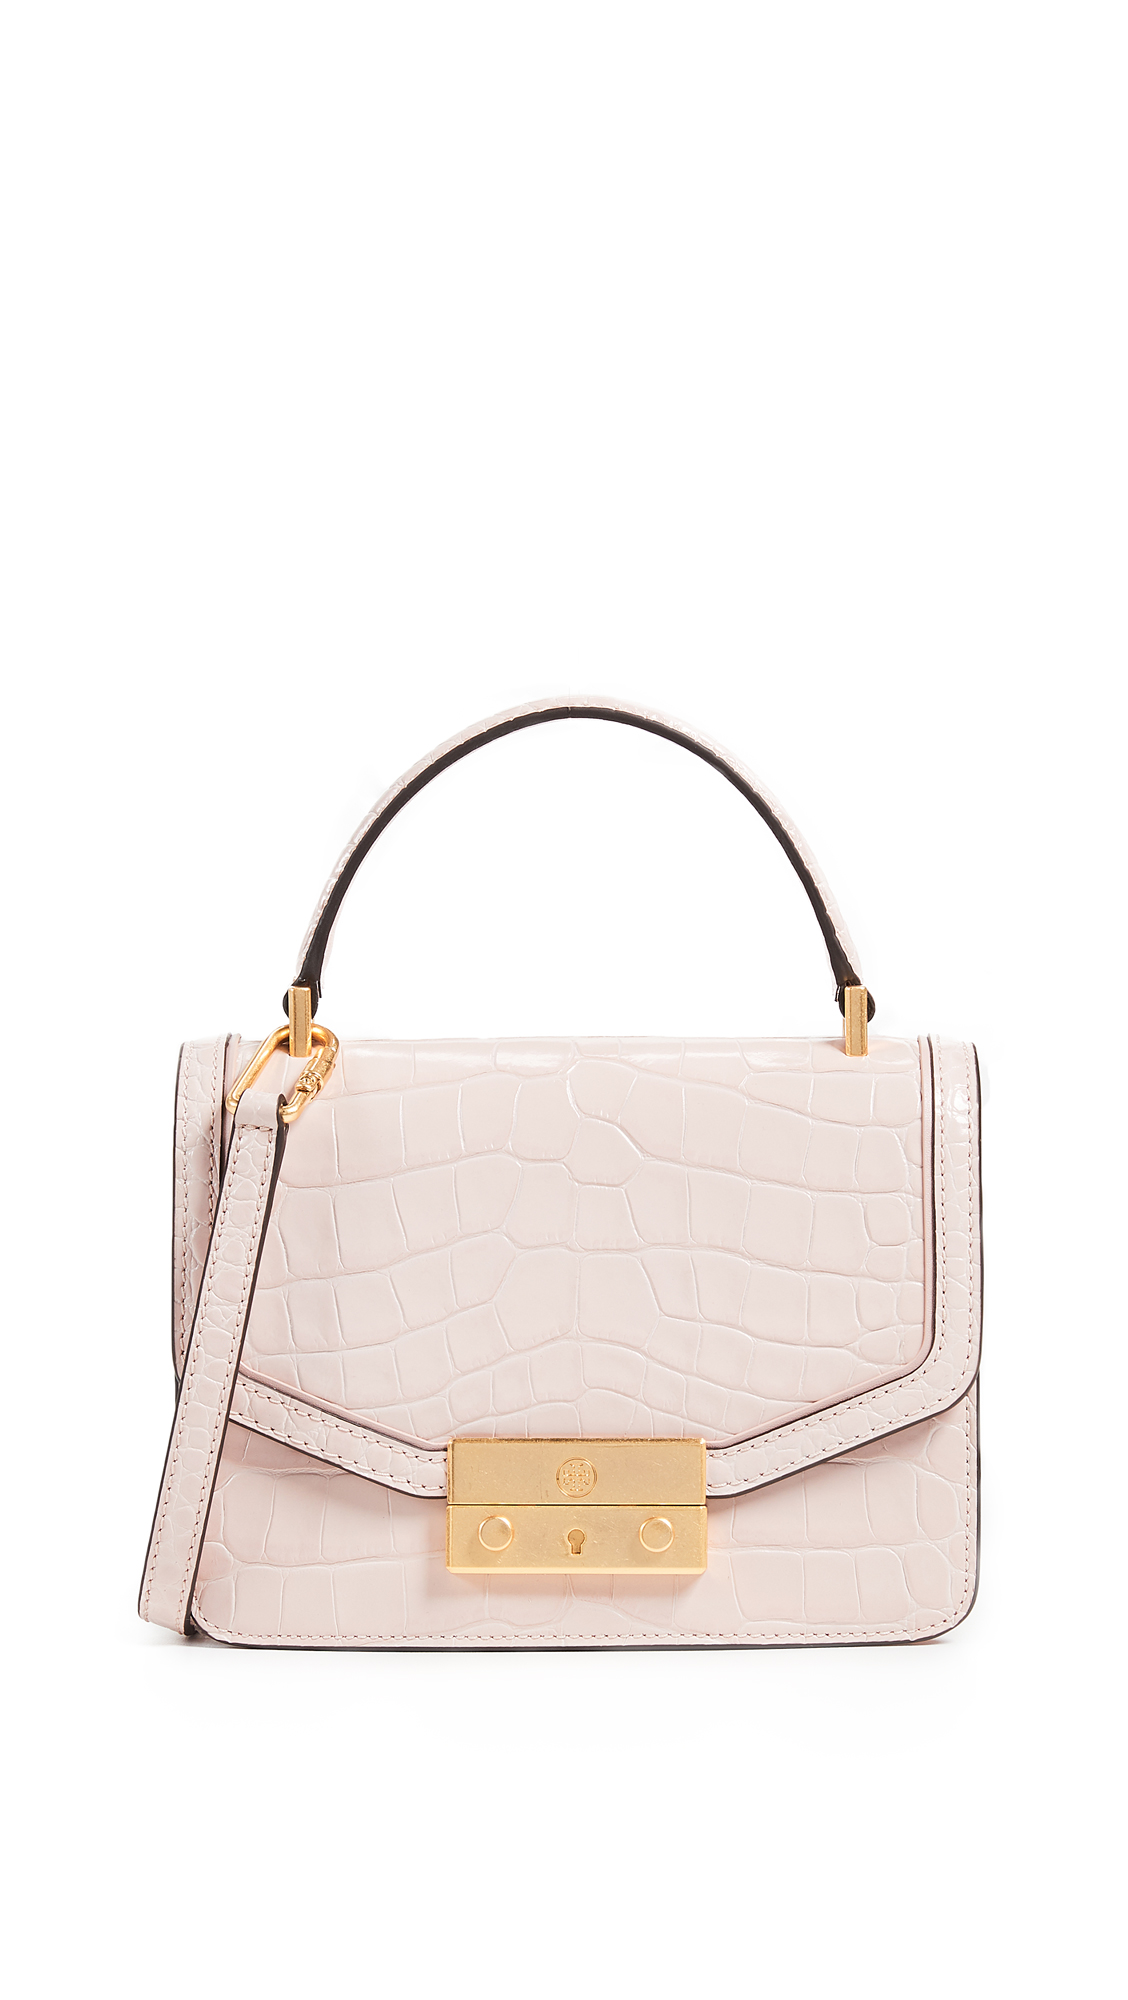 15c2ec169f7 Tory Burch Juliette Embossed Mini Top Handle Satchel In Clay Pink ...